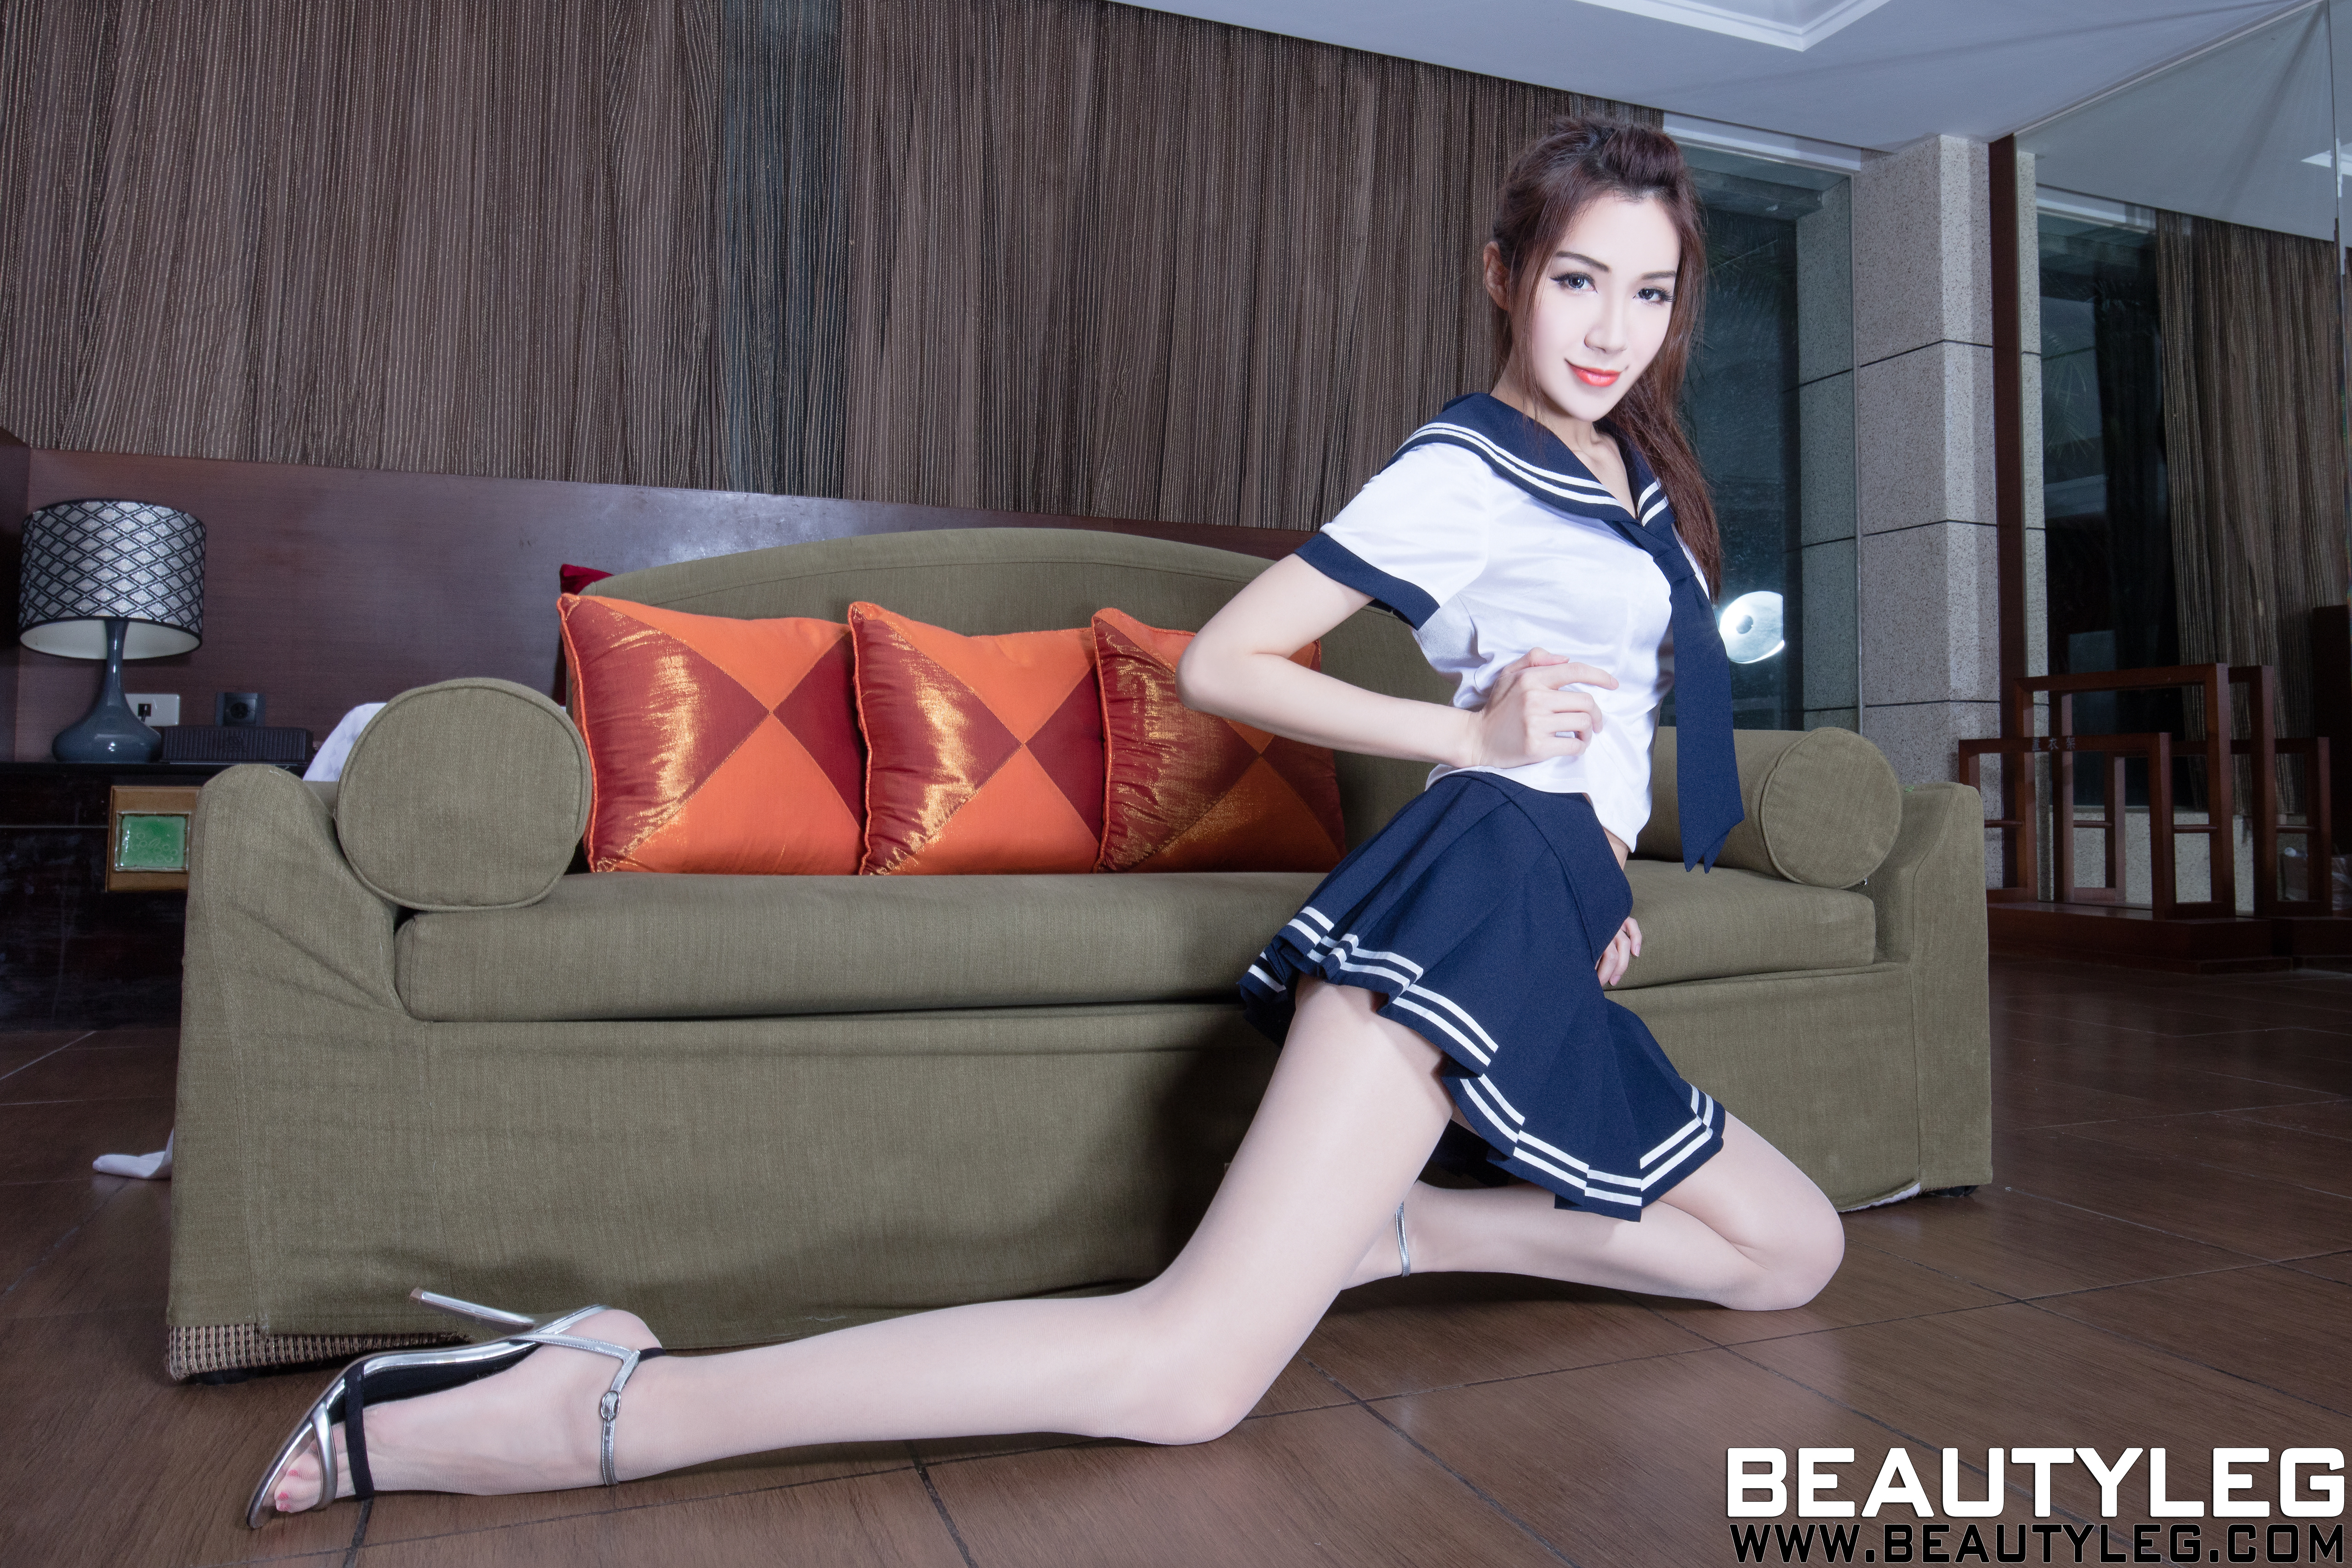 BEAUTYLEG 腿模 - Free Download 74  6